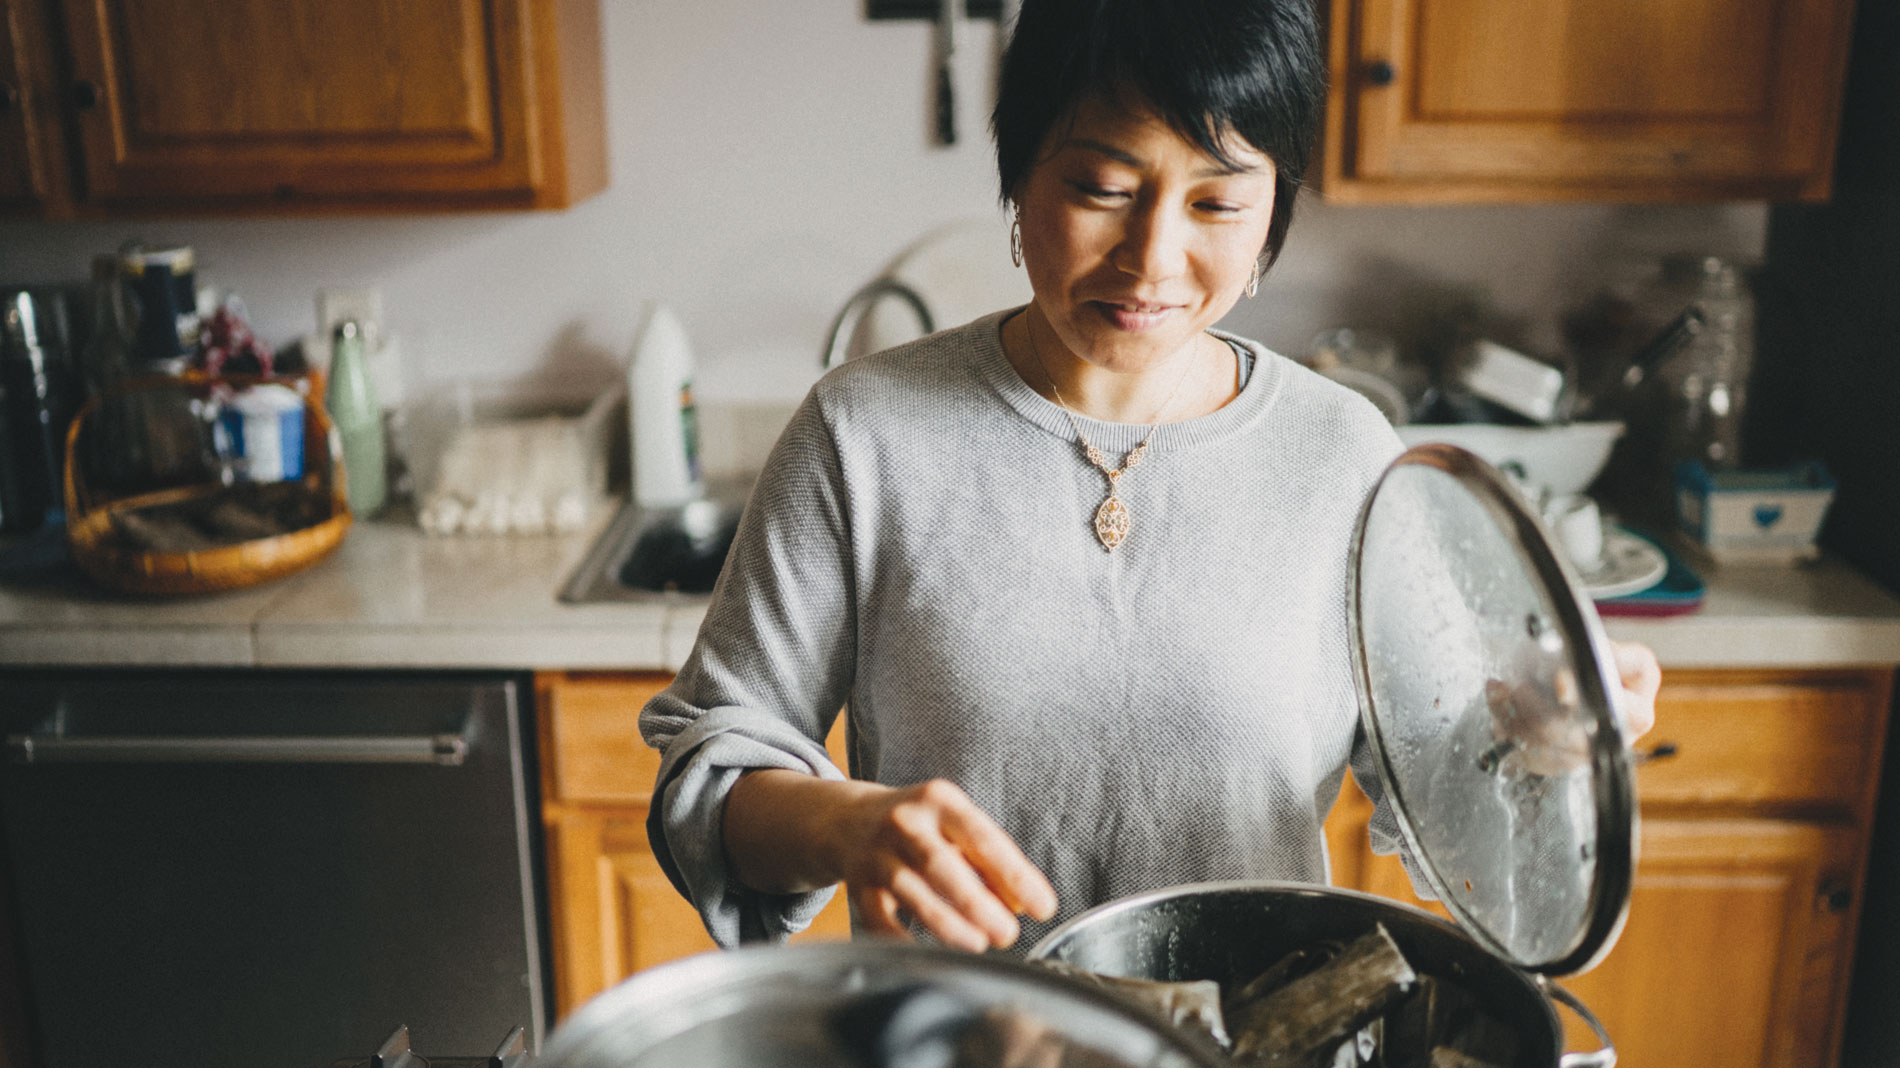 james beard semifinalist lona luo of lona's lil eats